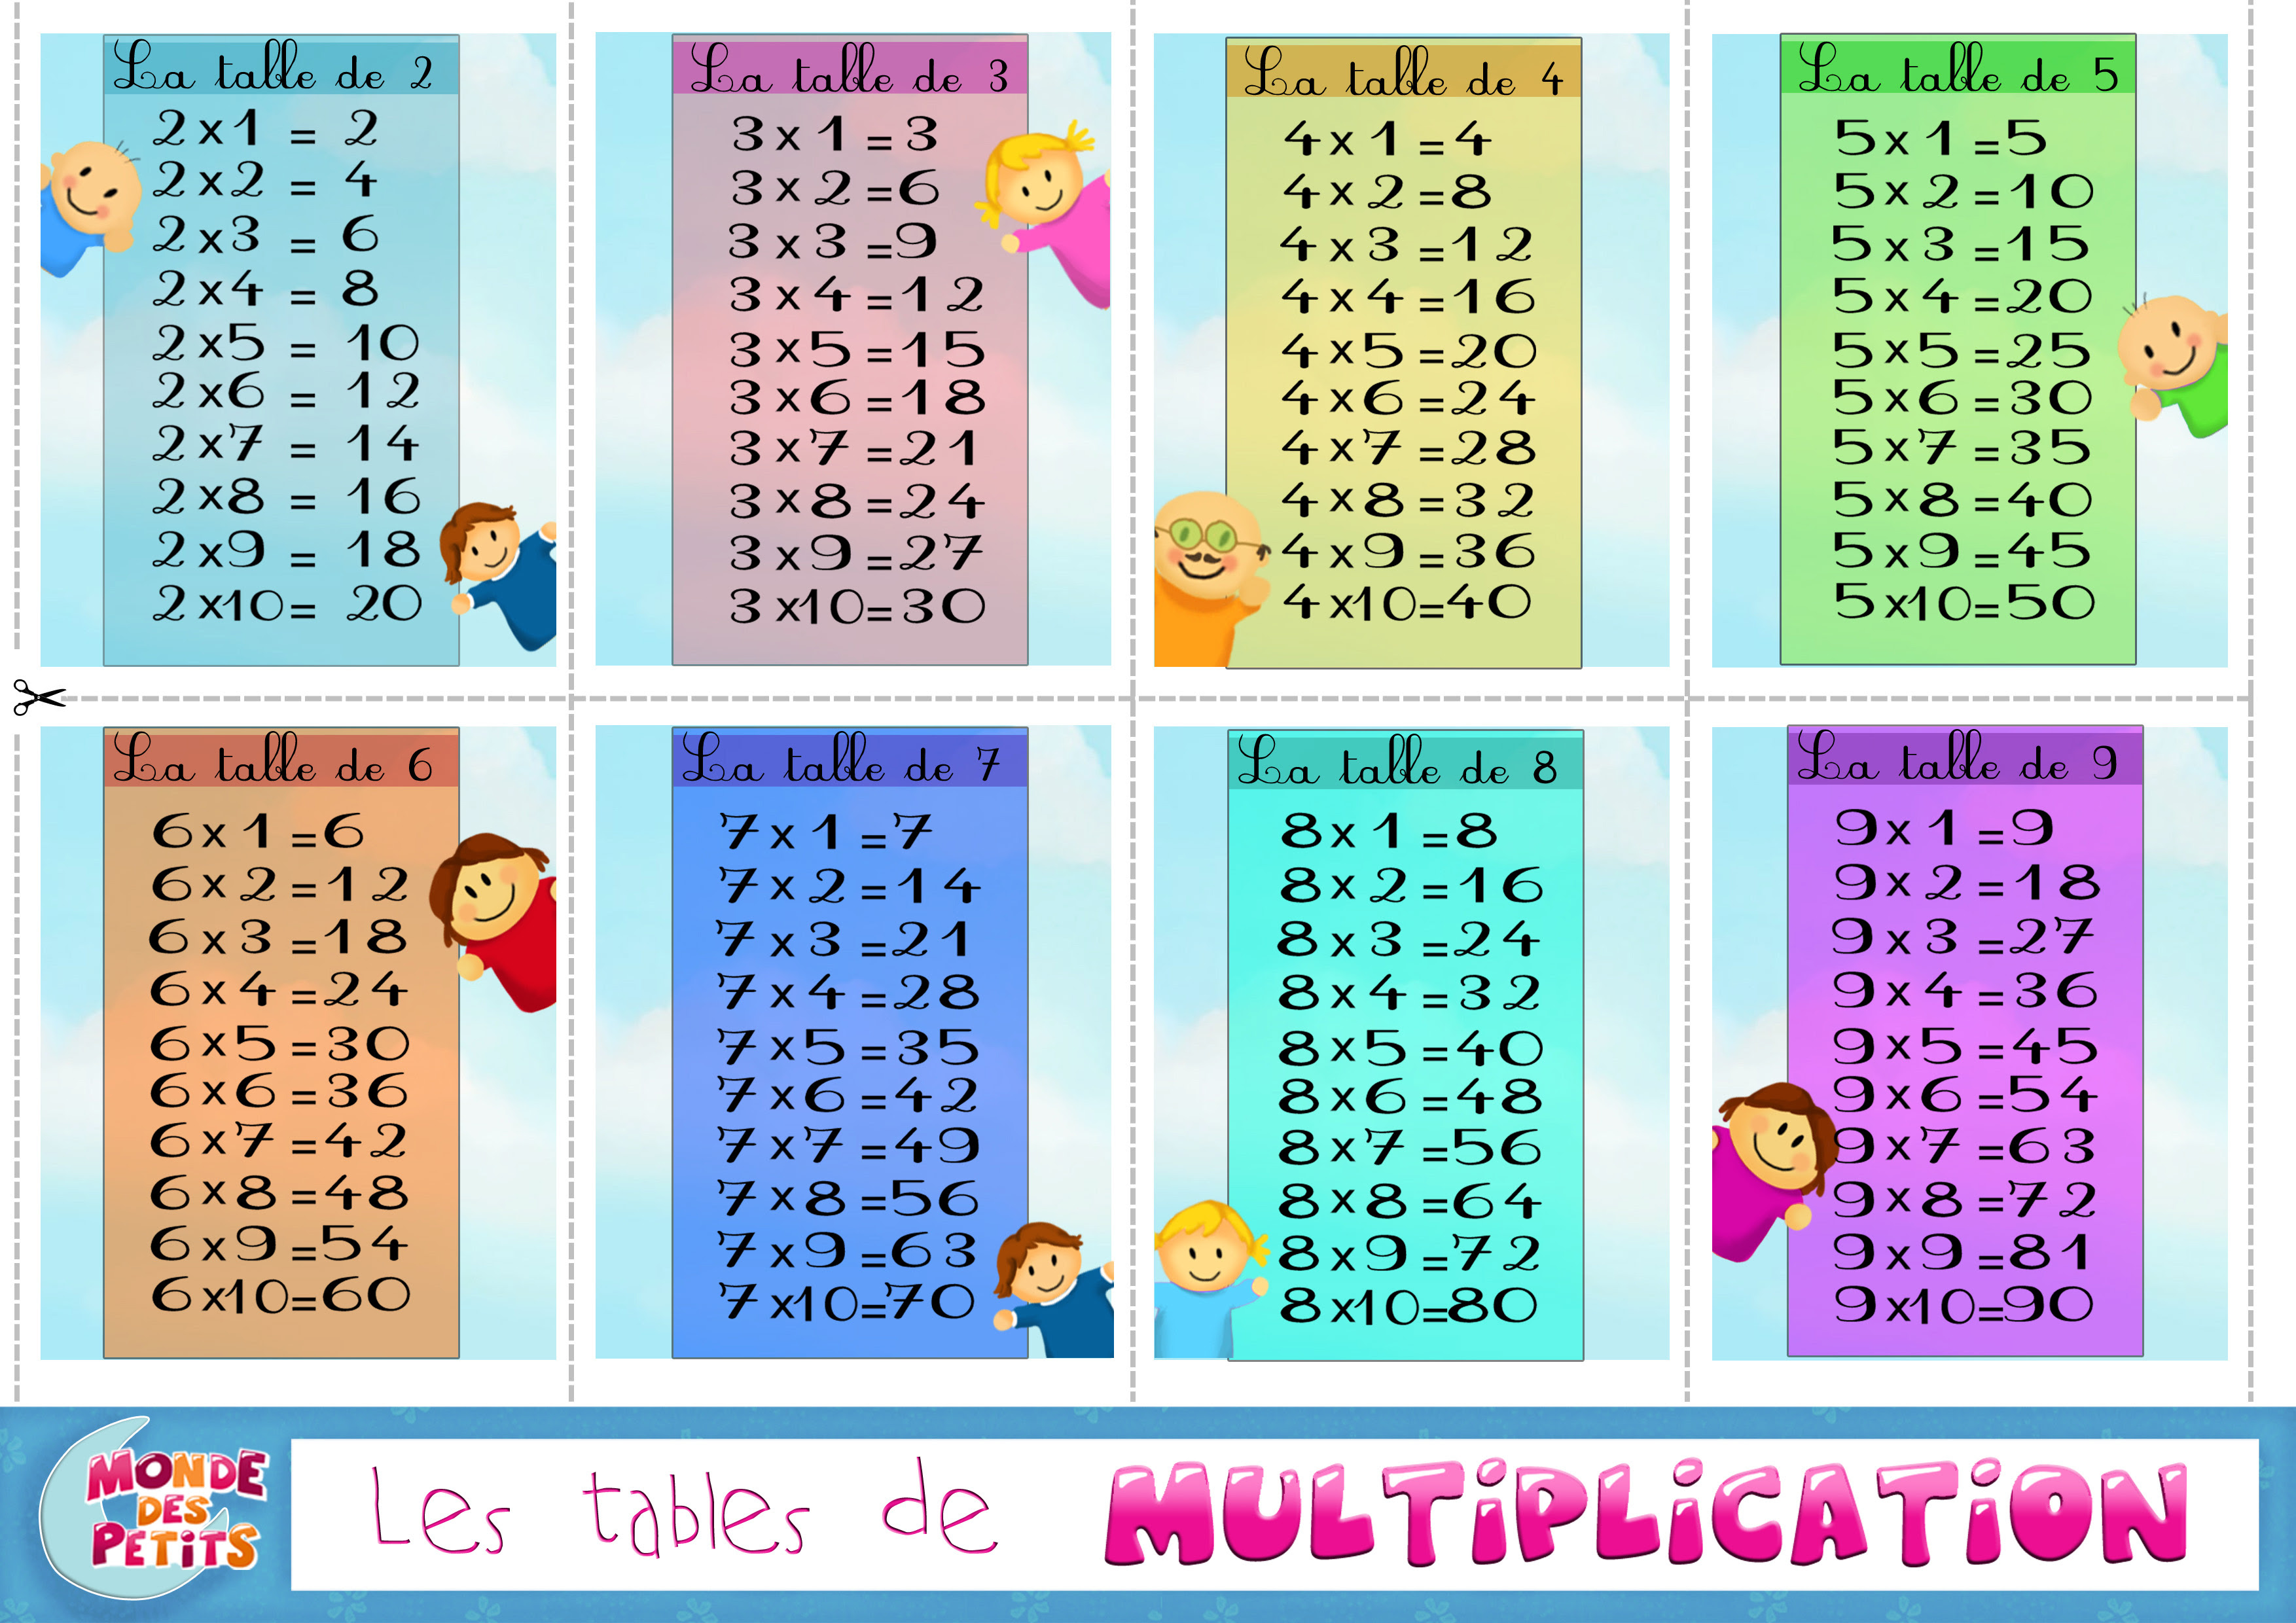 Maths Table 2 To 20 Principlesofafreesociety